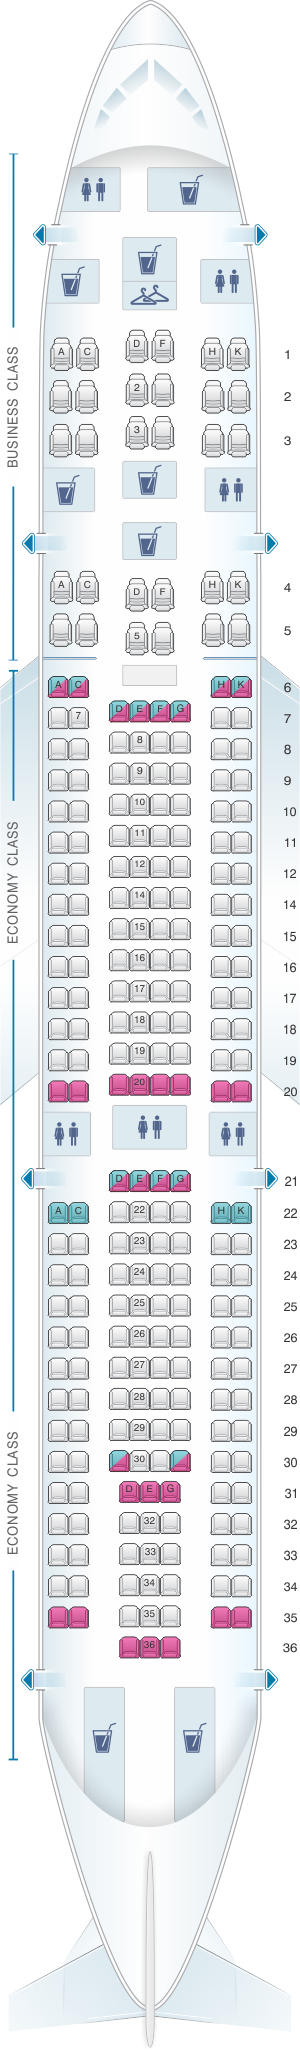 Seat map for Avianca Airbus A330